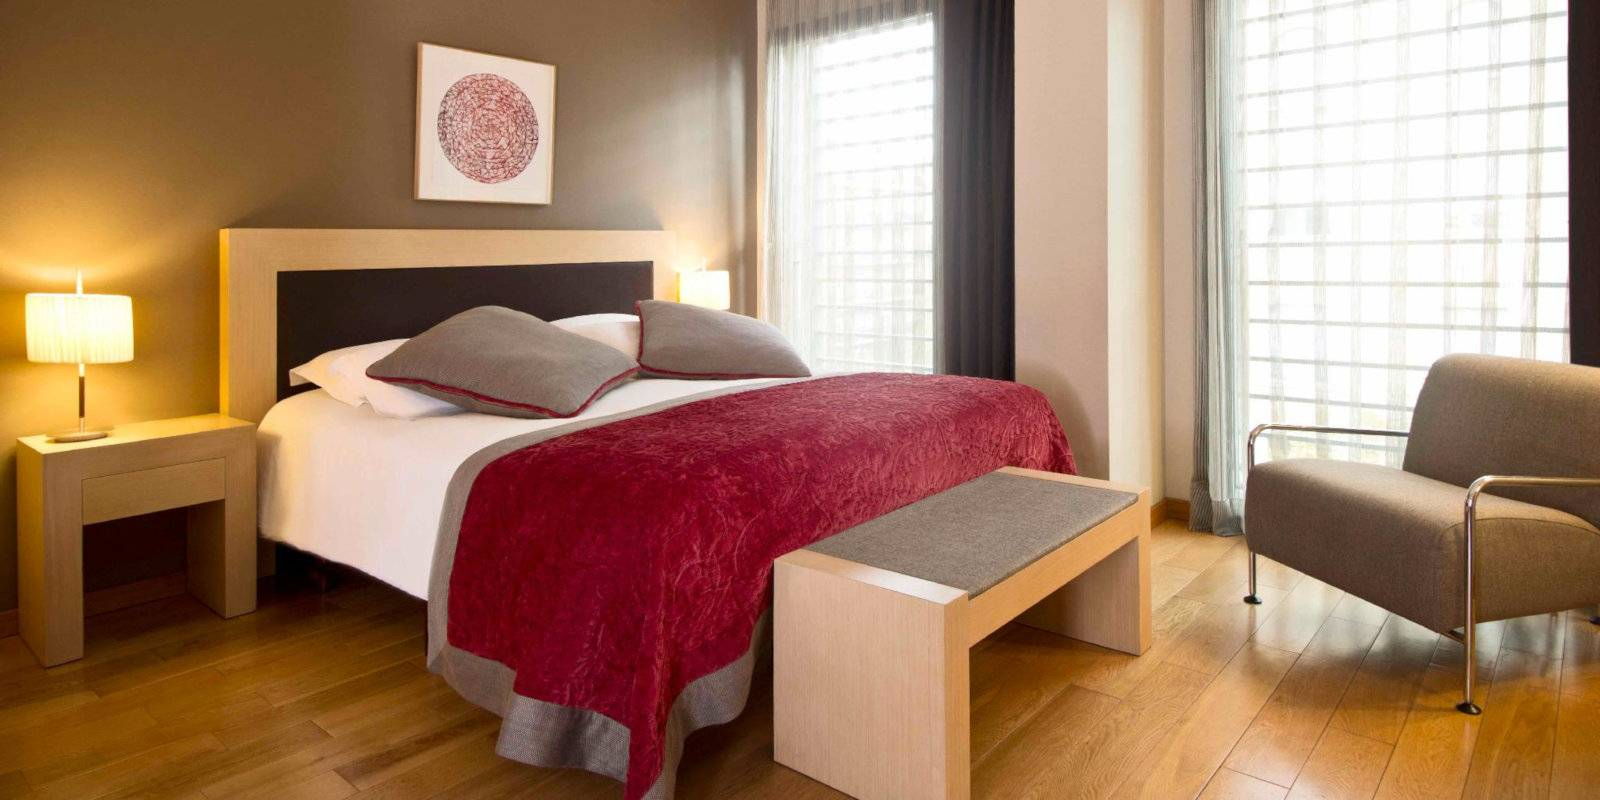 Gay travellers to Barcelona with pets will love the pet-friendly (and gay-friendly) hotel Villa Emilia